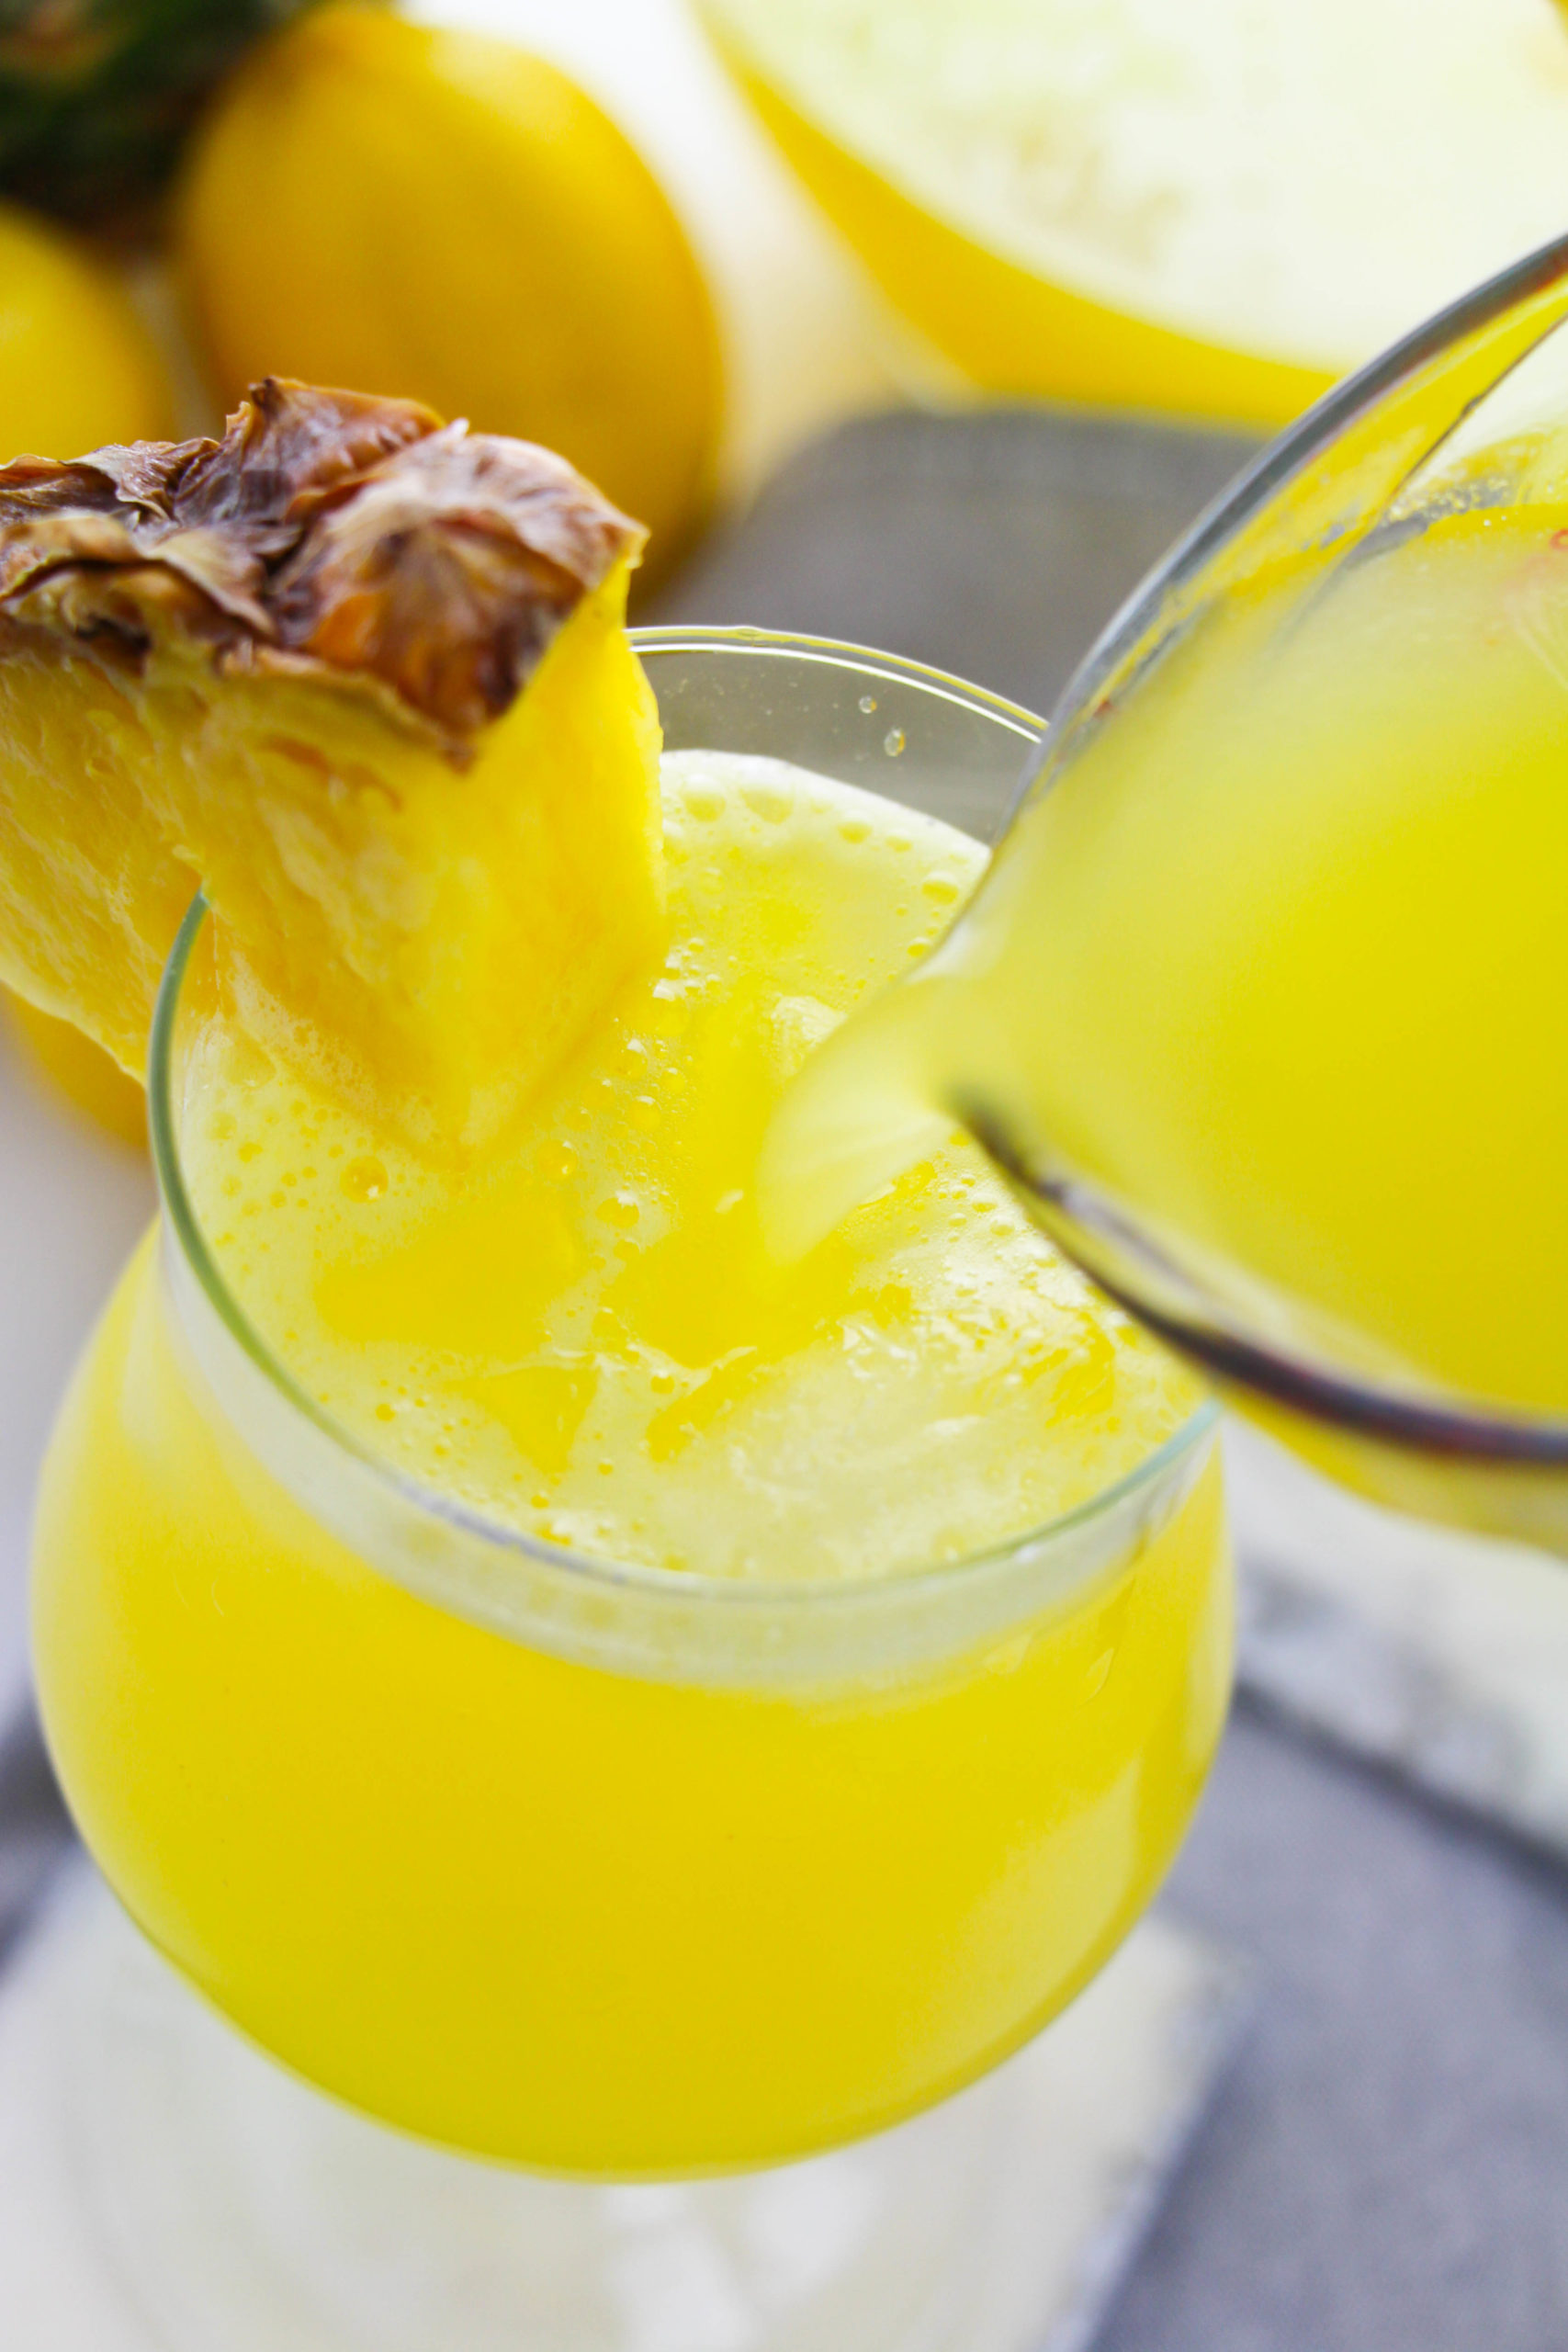 Side view of a glass of pineapple lemonade with a piece of pineapple on the glass.